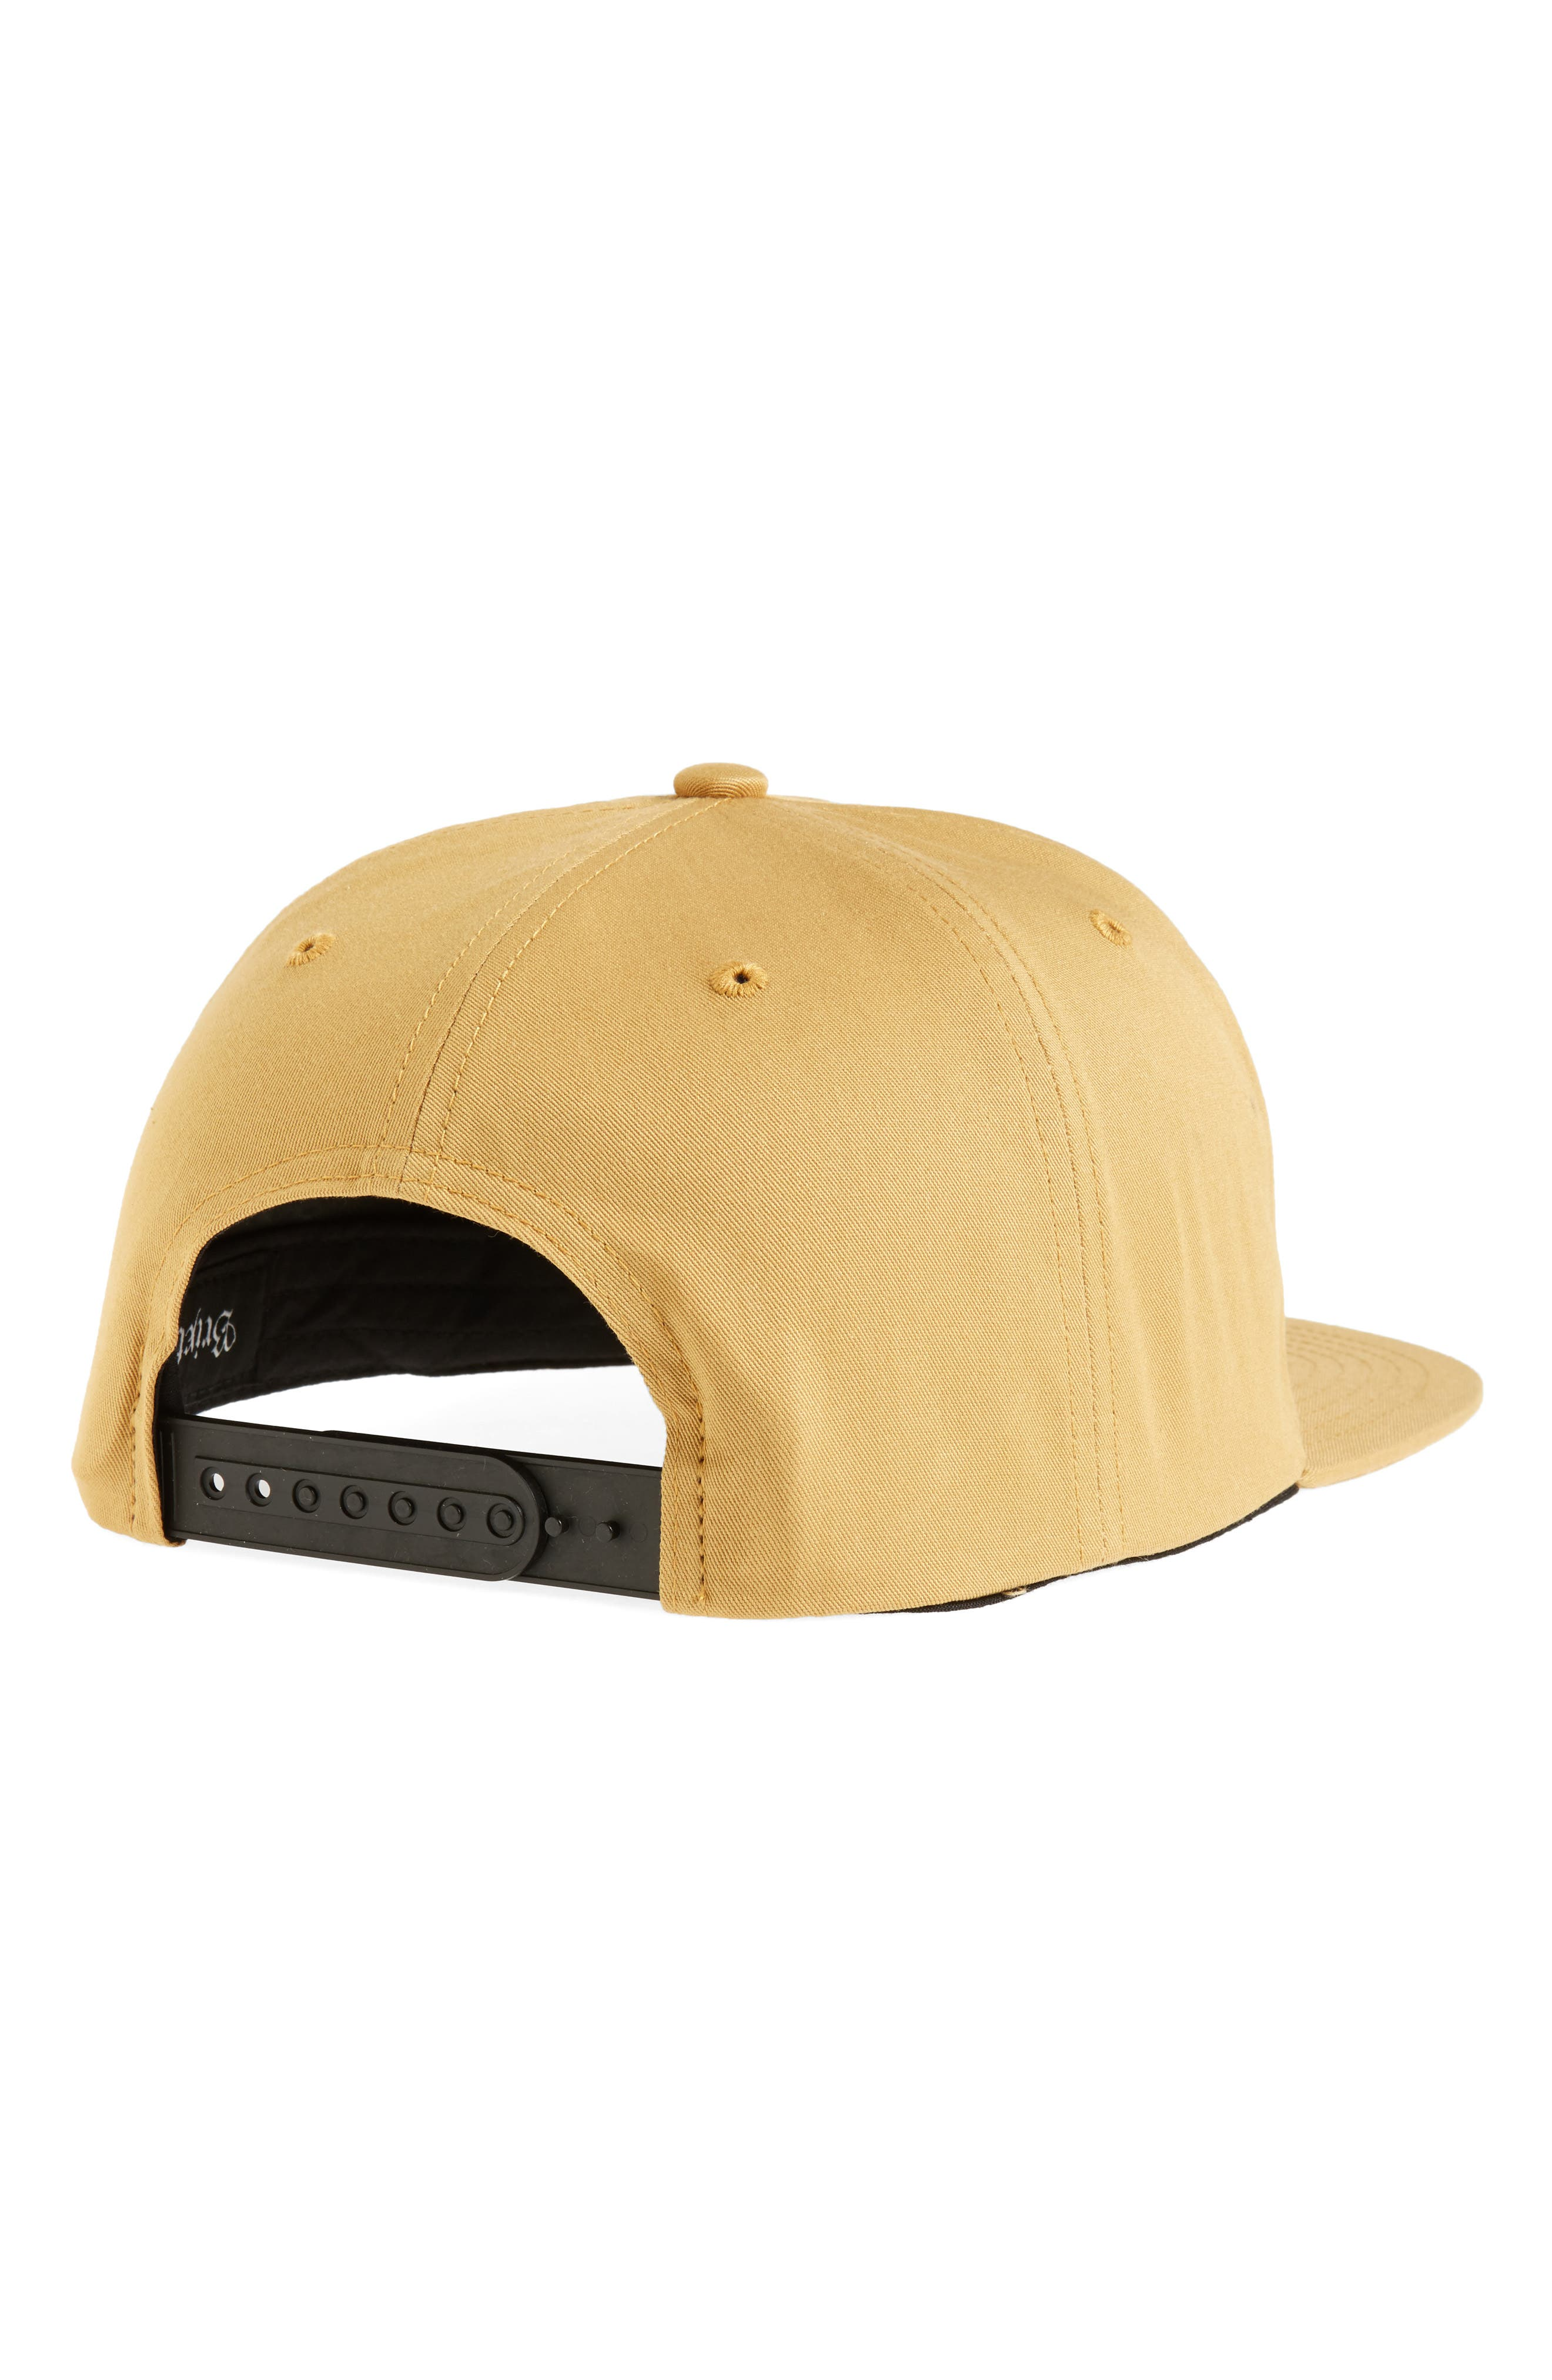 Navato Snapback Cap,                             Alternate thumbnail 2, color,                             200